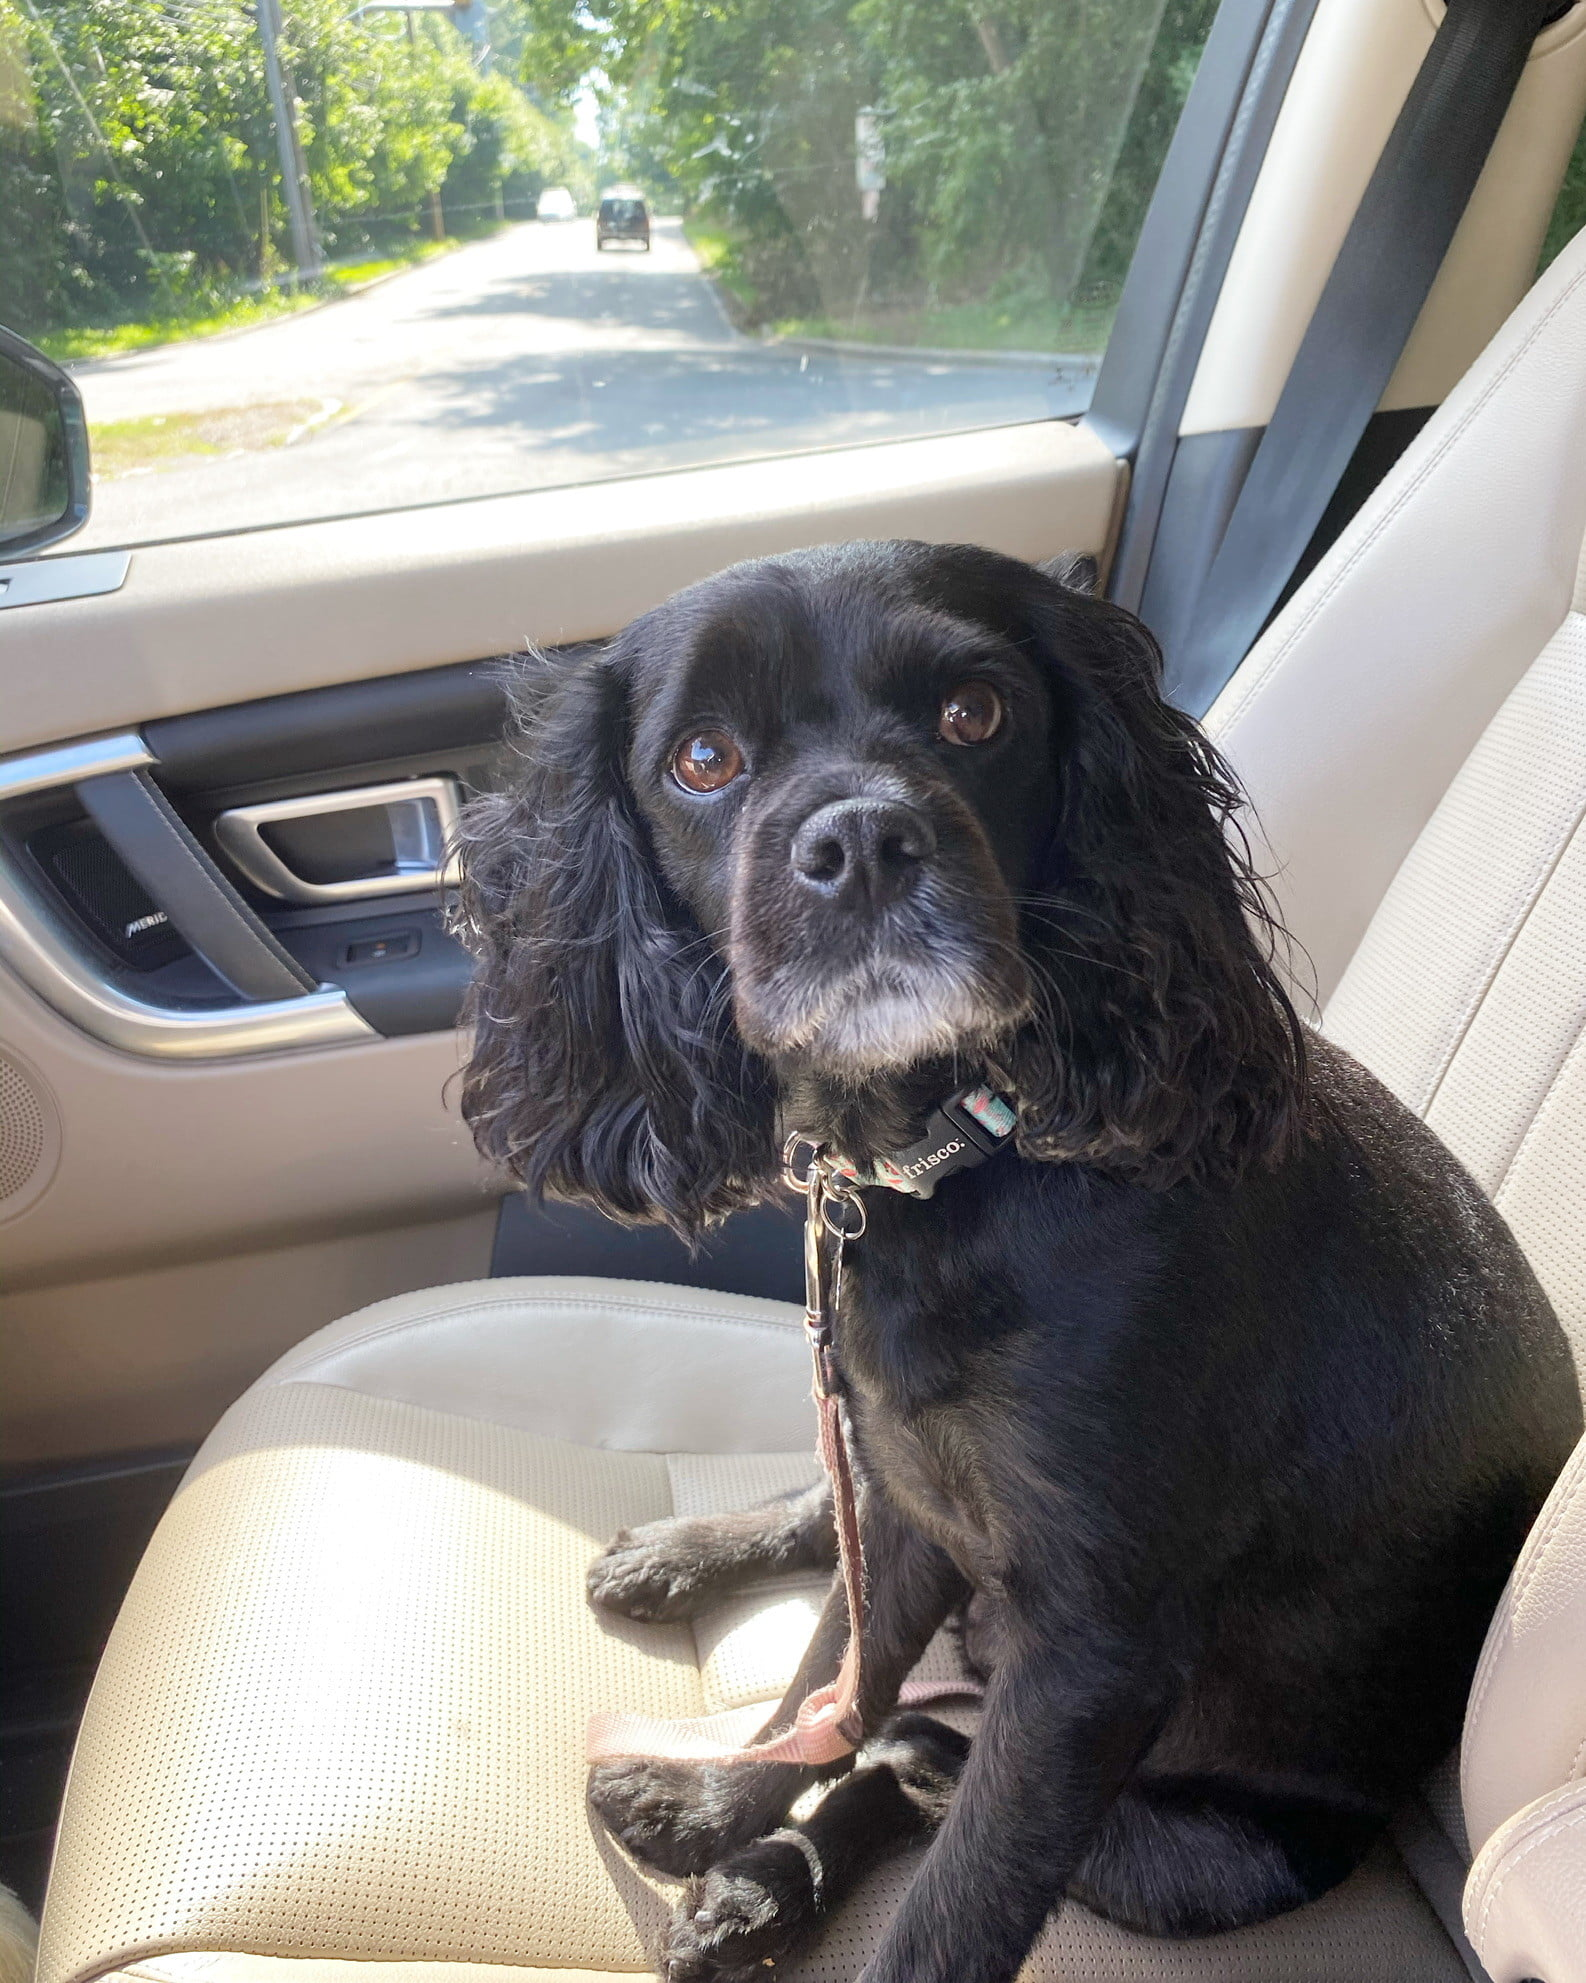 a black cavapoo sits in the sunshine in the passenger seat of the car